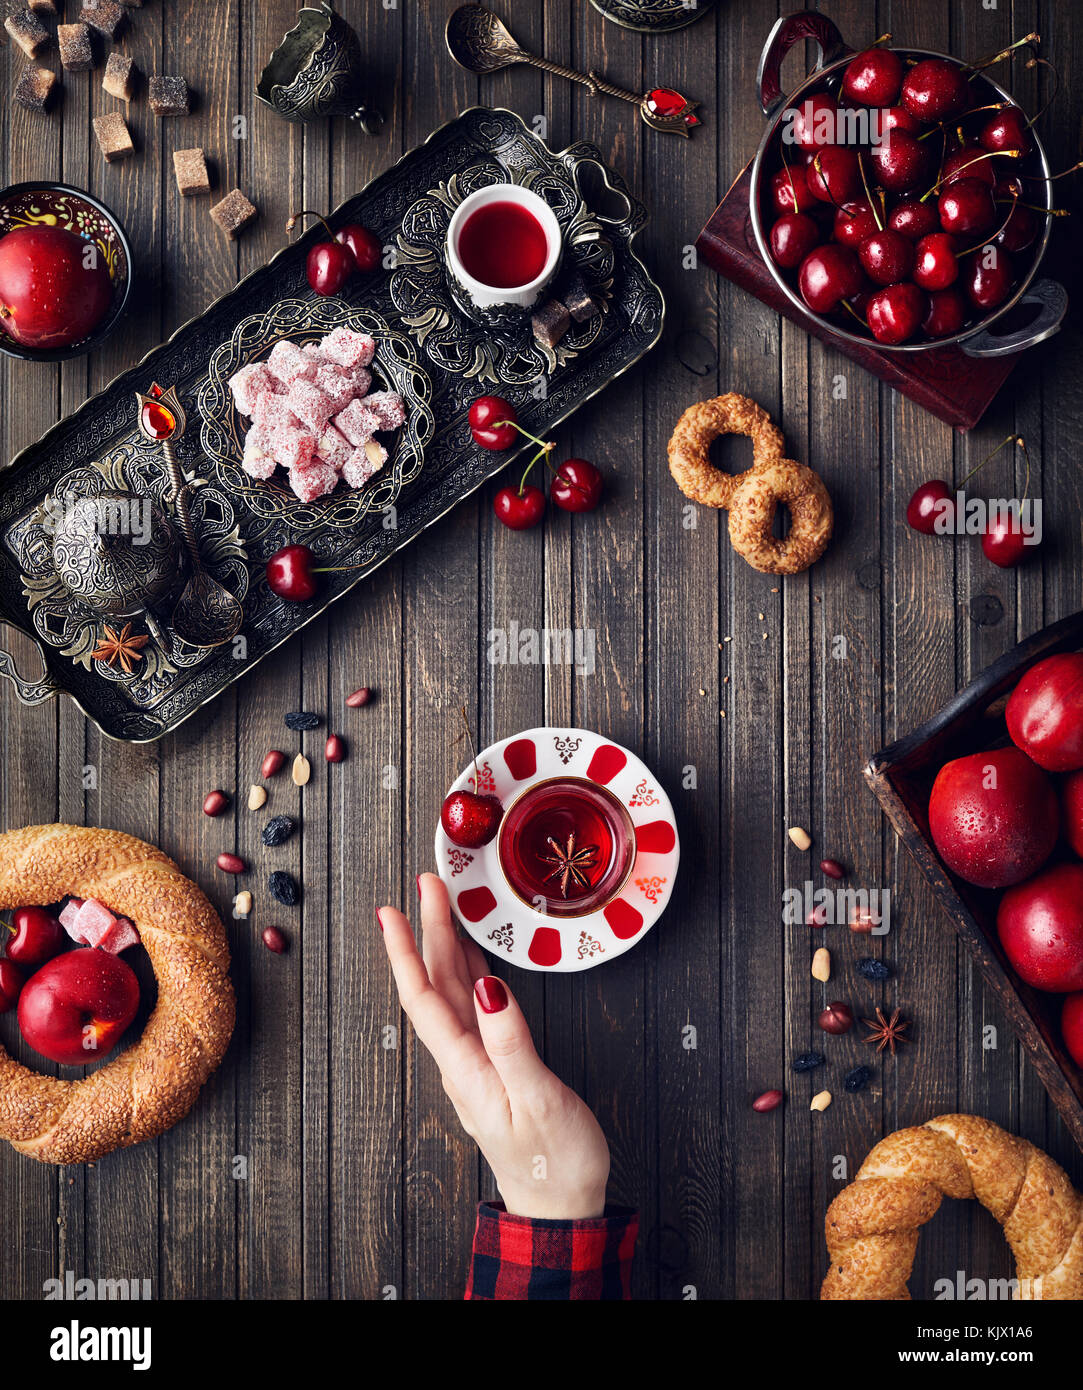 Woman touching red tea near Turkish delights rahat lokum, simits and fruits on wooden table - Stock Image